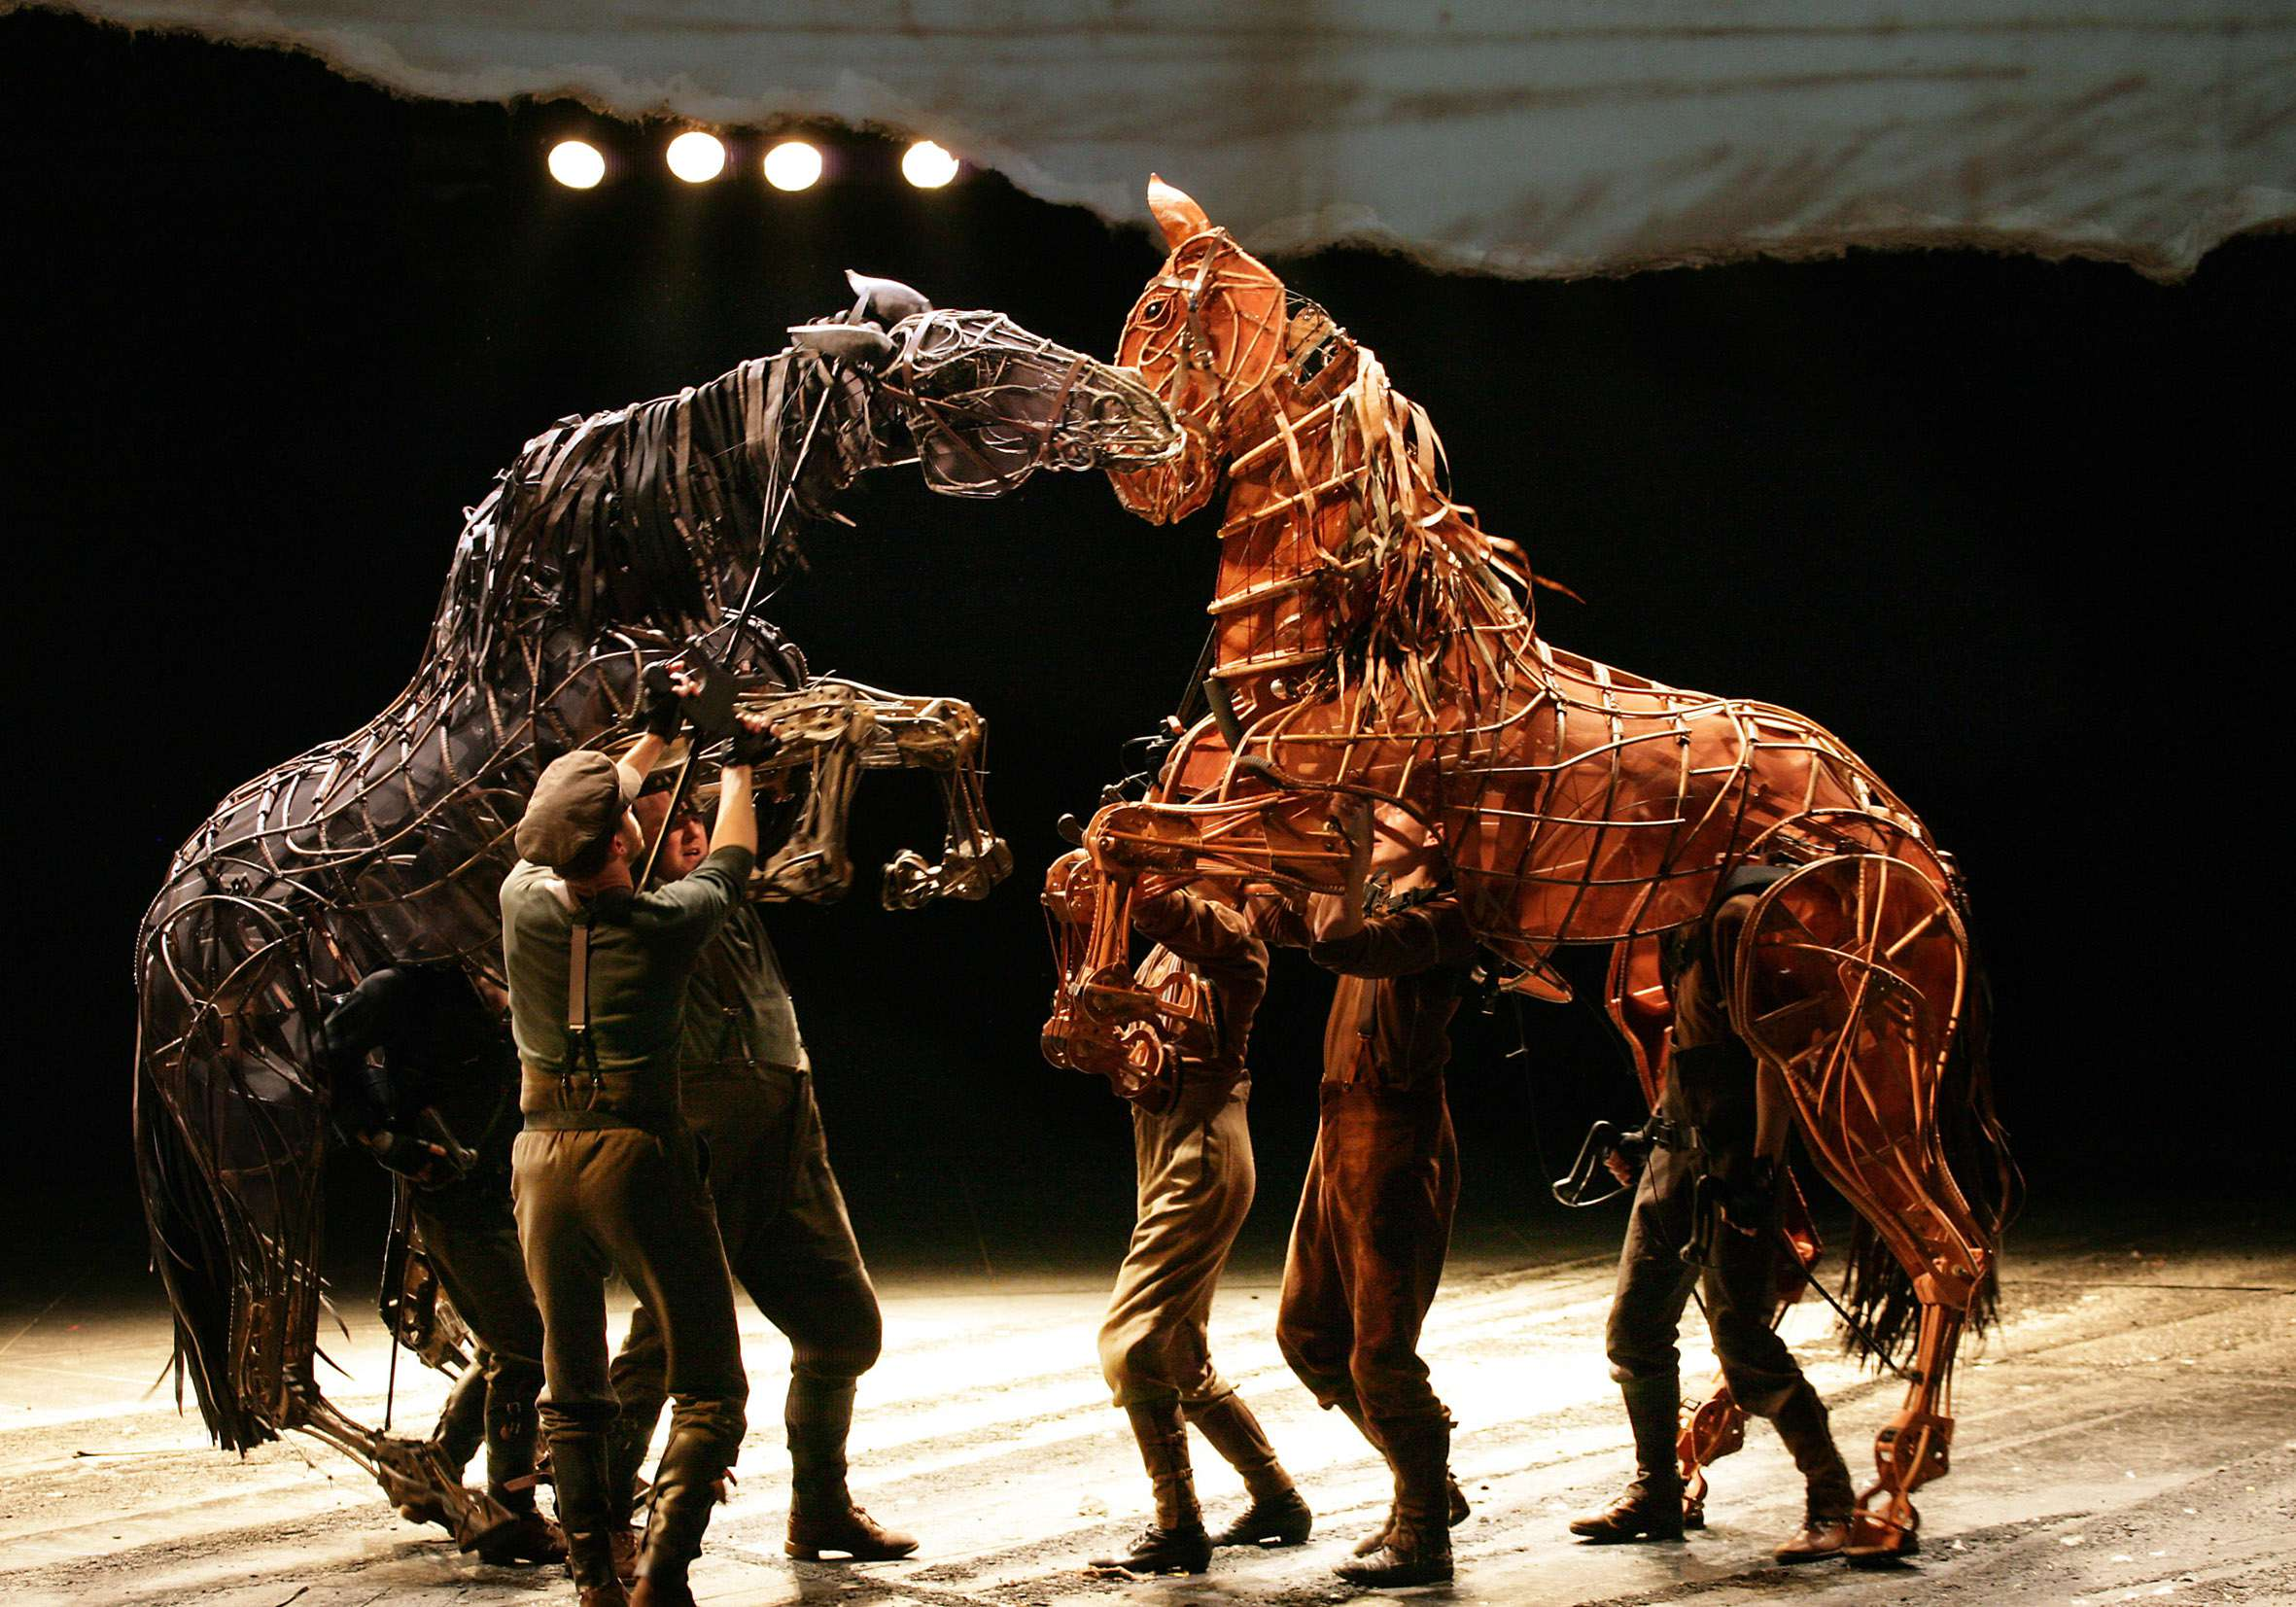 One of the London Stage's newest puppetry phenomenas, Warhorse has expanded the world of puppetry.